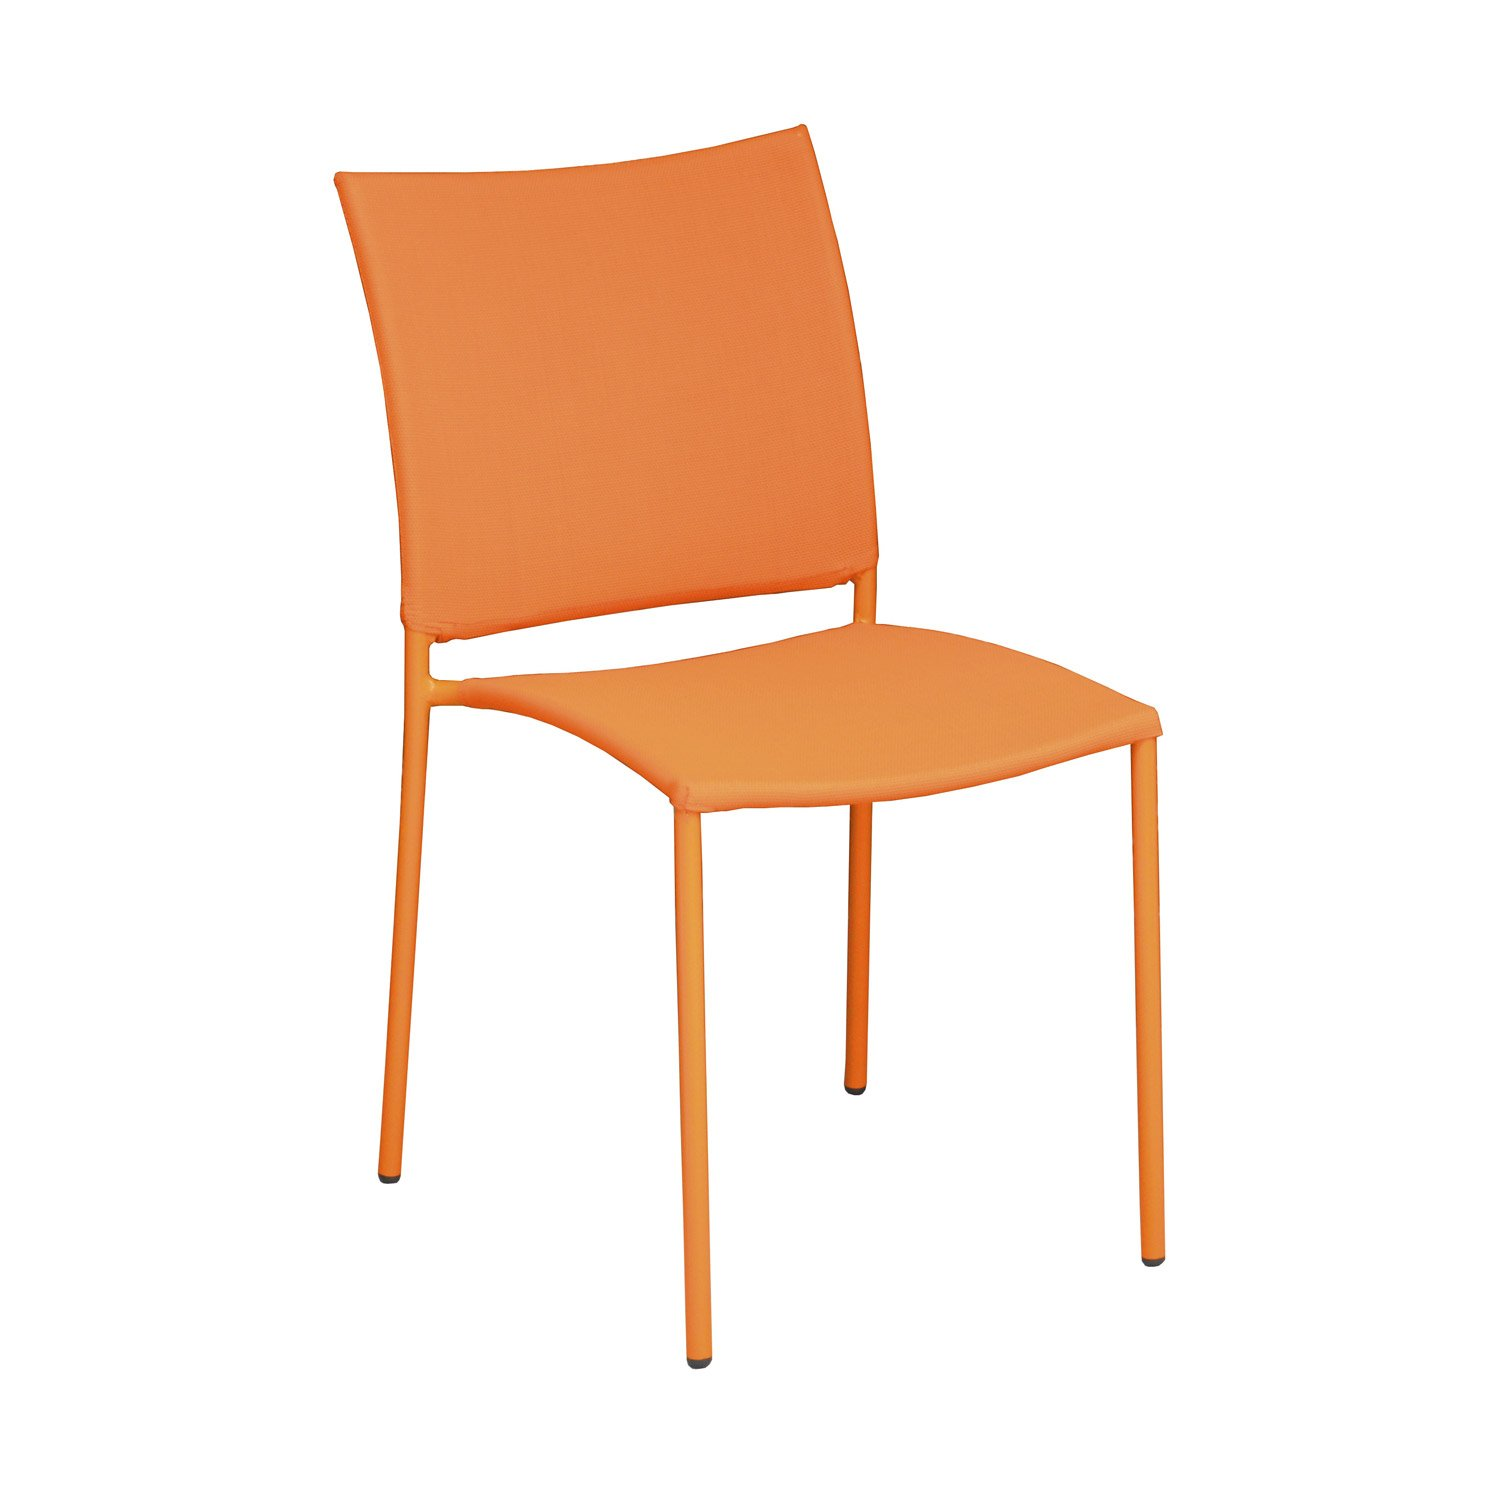 Chaise de jardin en acier globe orange leroy merlin for Chaise balancoire jardin